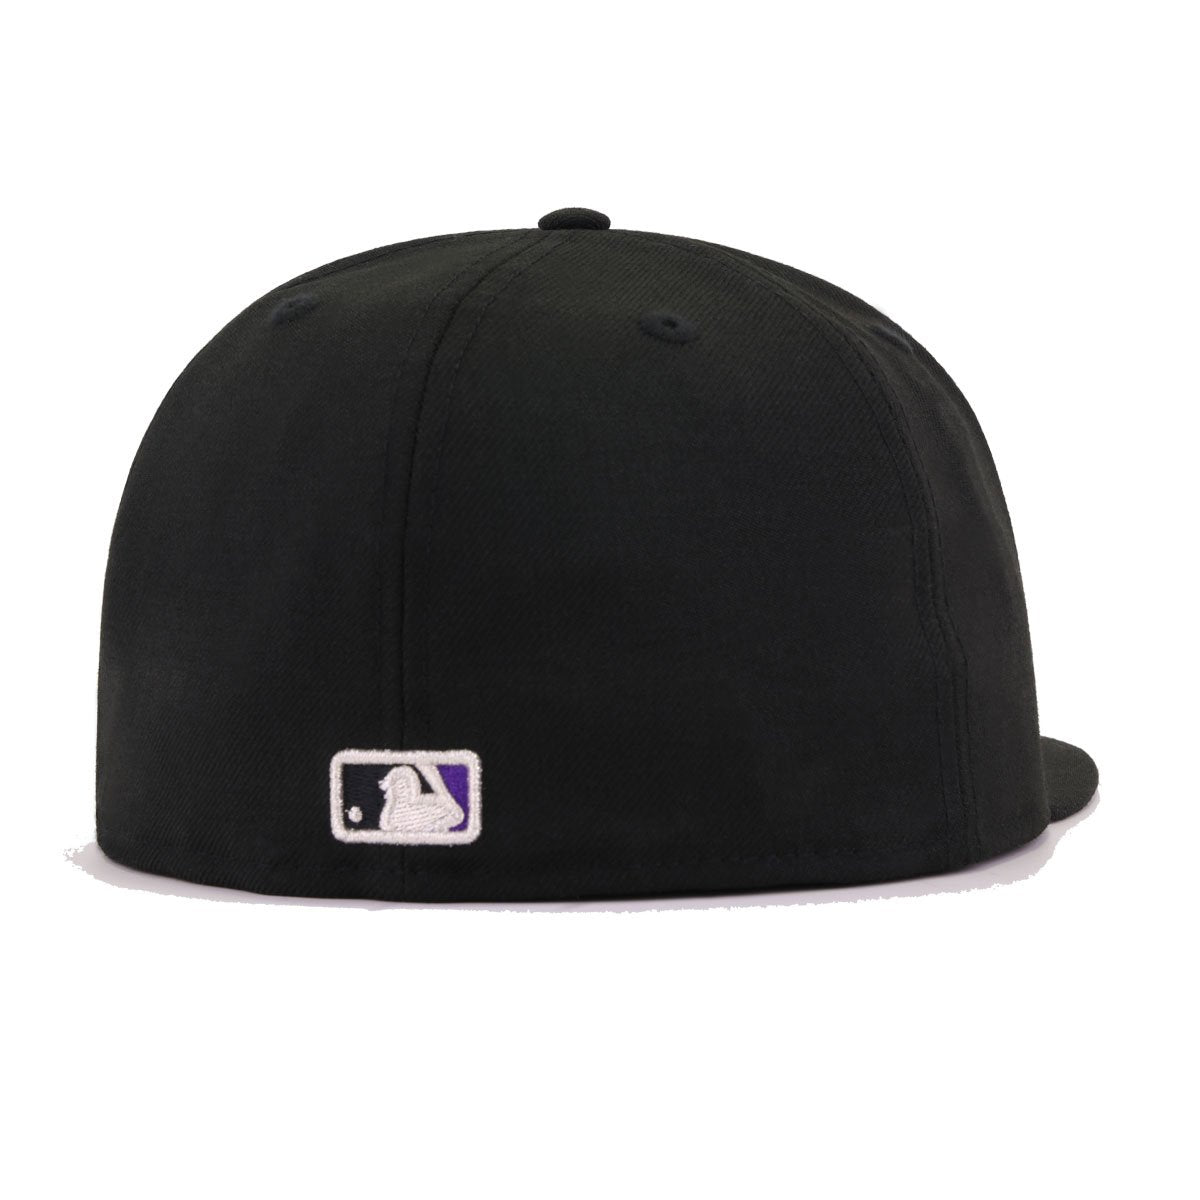 Colorado Rockies Black Batting Practice New Era 59Fifty Fitted